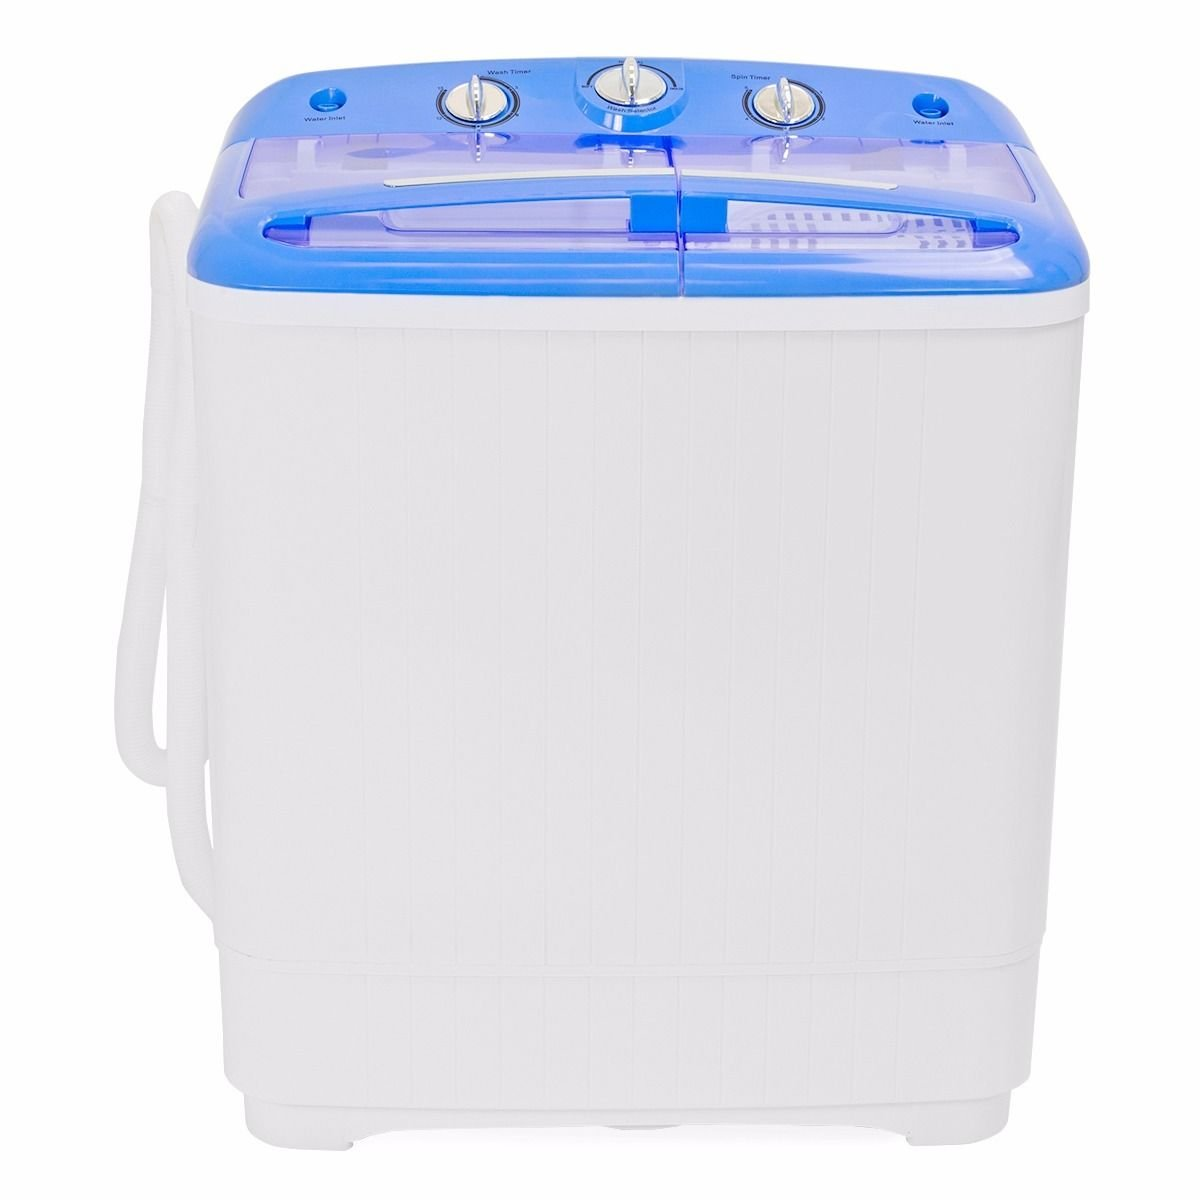 Gracelove Portable Mini Washer Dorm RV Cycle Compact 9 lbs Wash Dry Spin Machine Laundry by Love+Grace (Image #2)